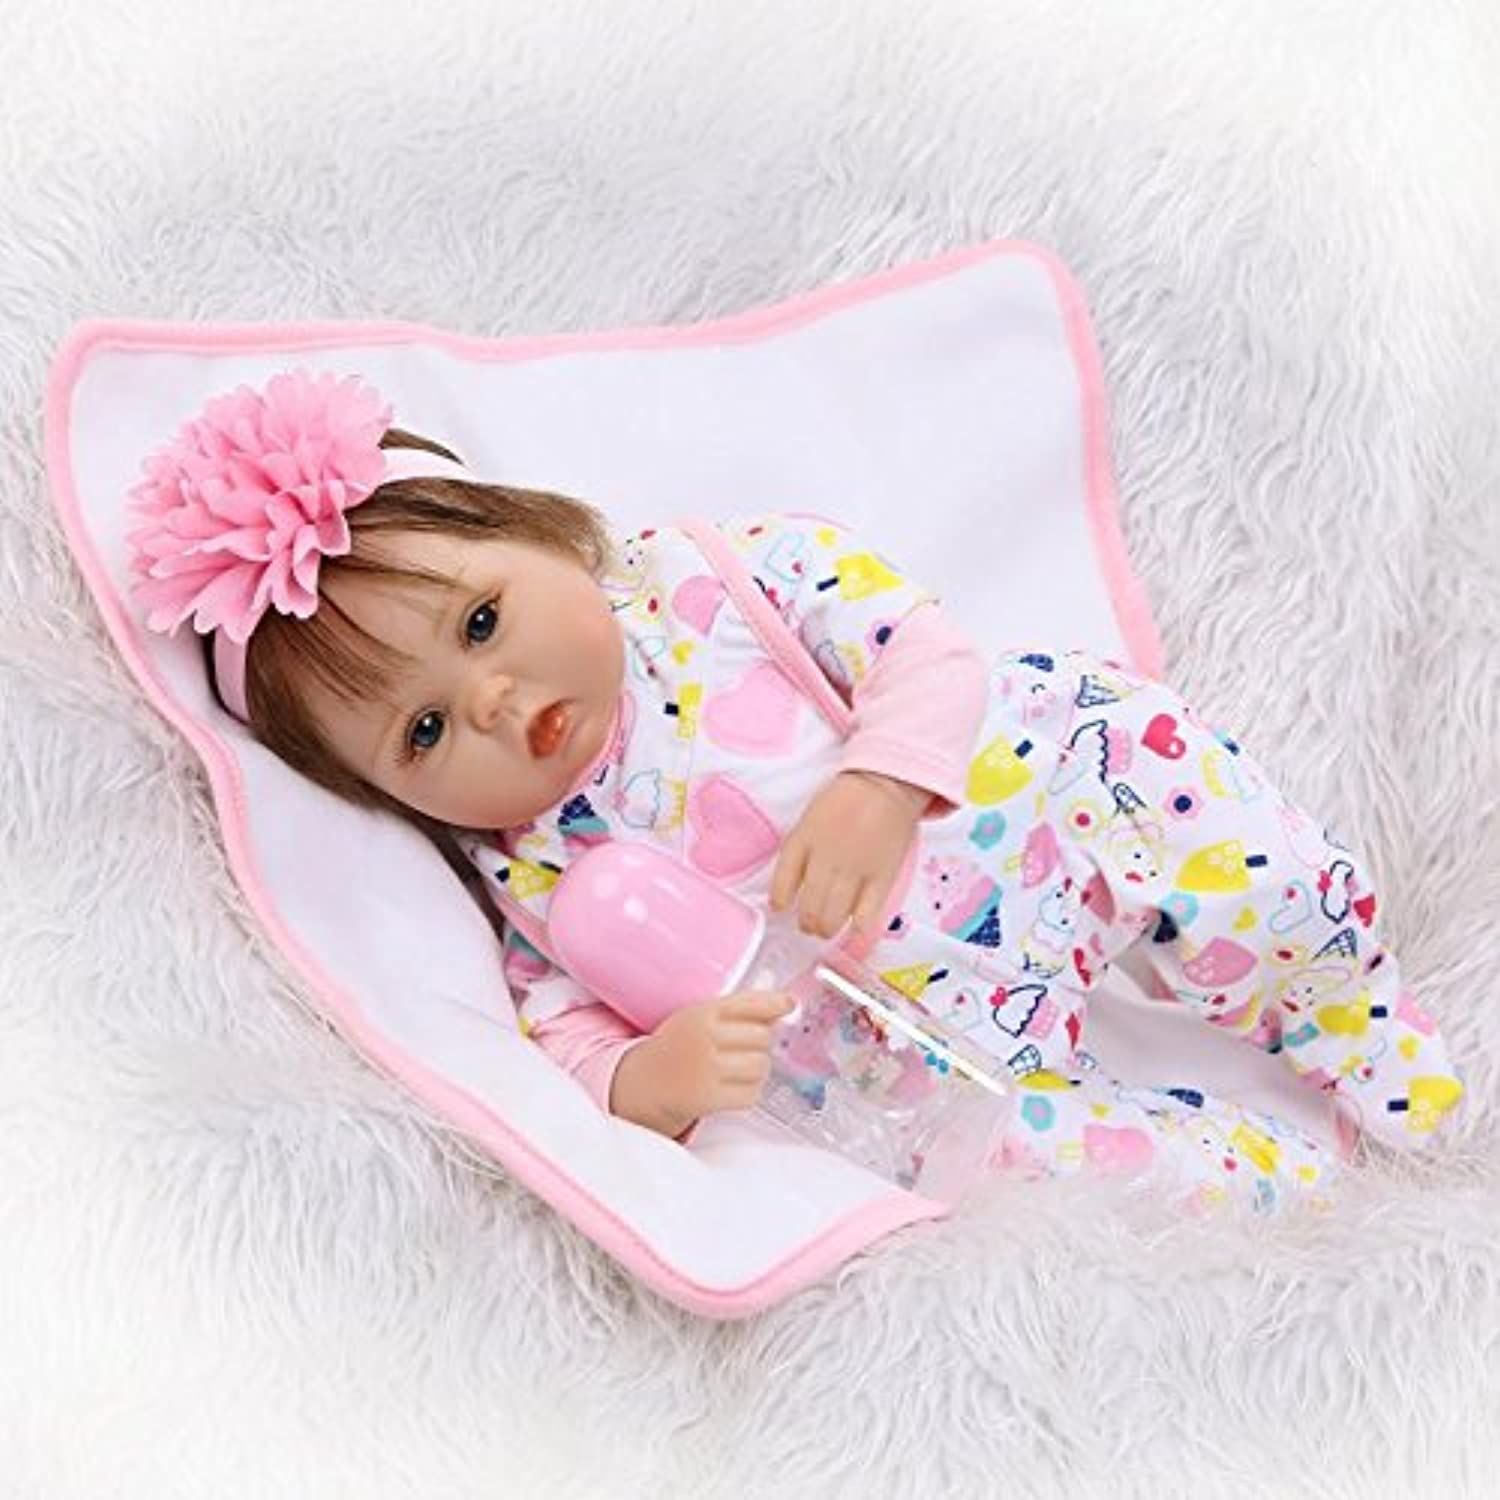 Lilith Realistic Lifelike 17インチ42 cm Lovely Cute Look本物Reborn人形ベビーソフトボディシリコンビニール人形新生児幼児用Toy for Kids Children Xmasクリスマス誕生日ギフトwith Magneticおしゃぶり